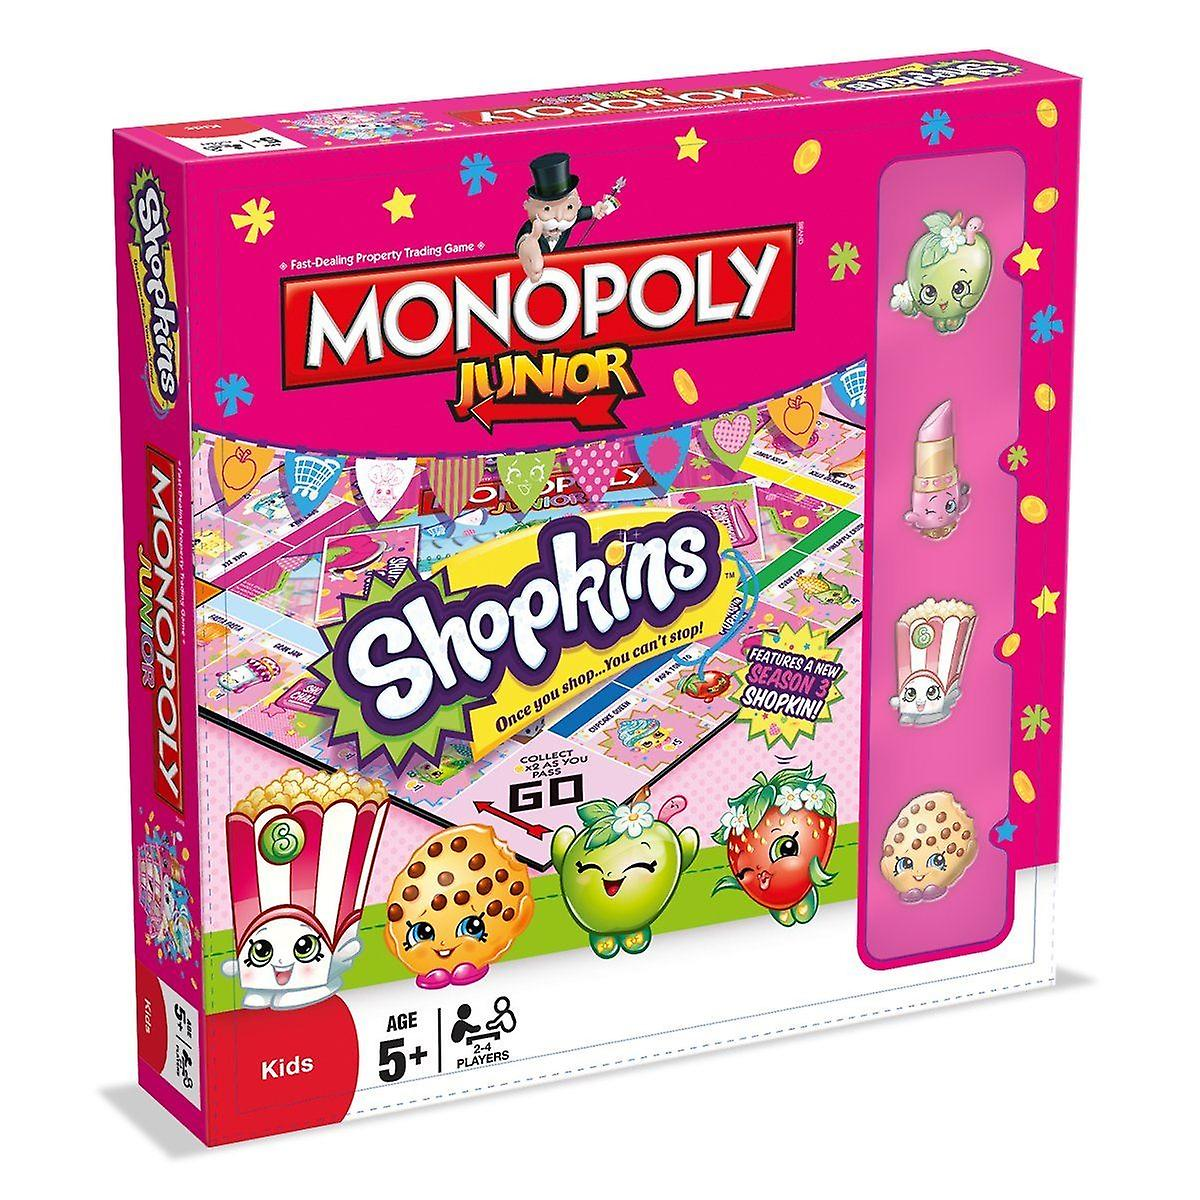 Shopkins Monopoly Junior